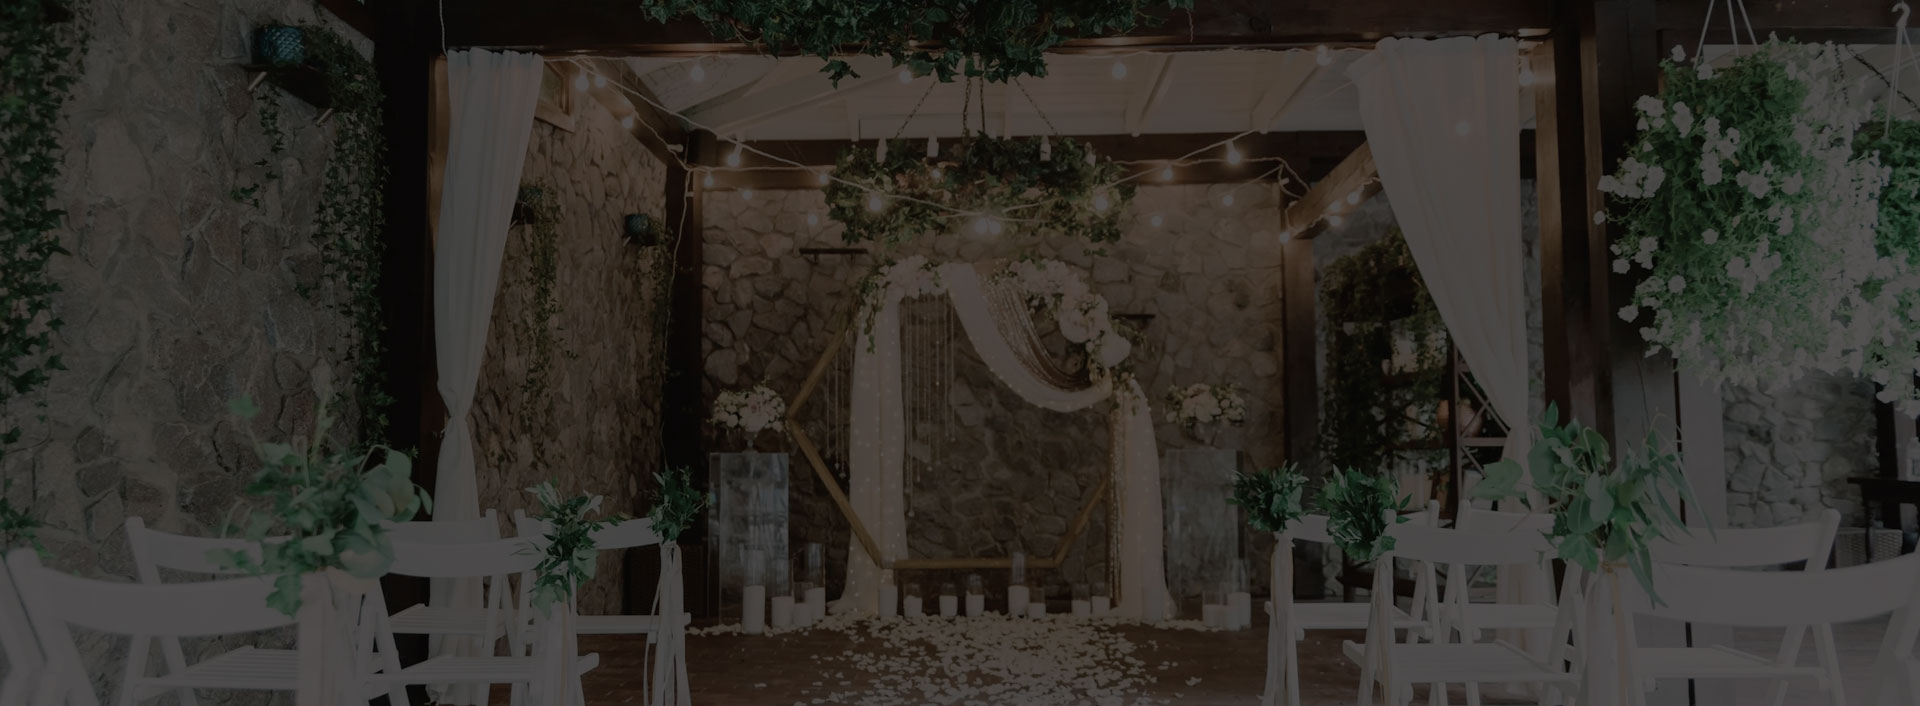 decoration mariage personnalise